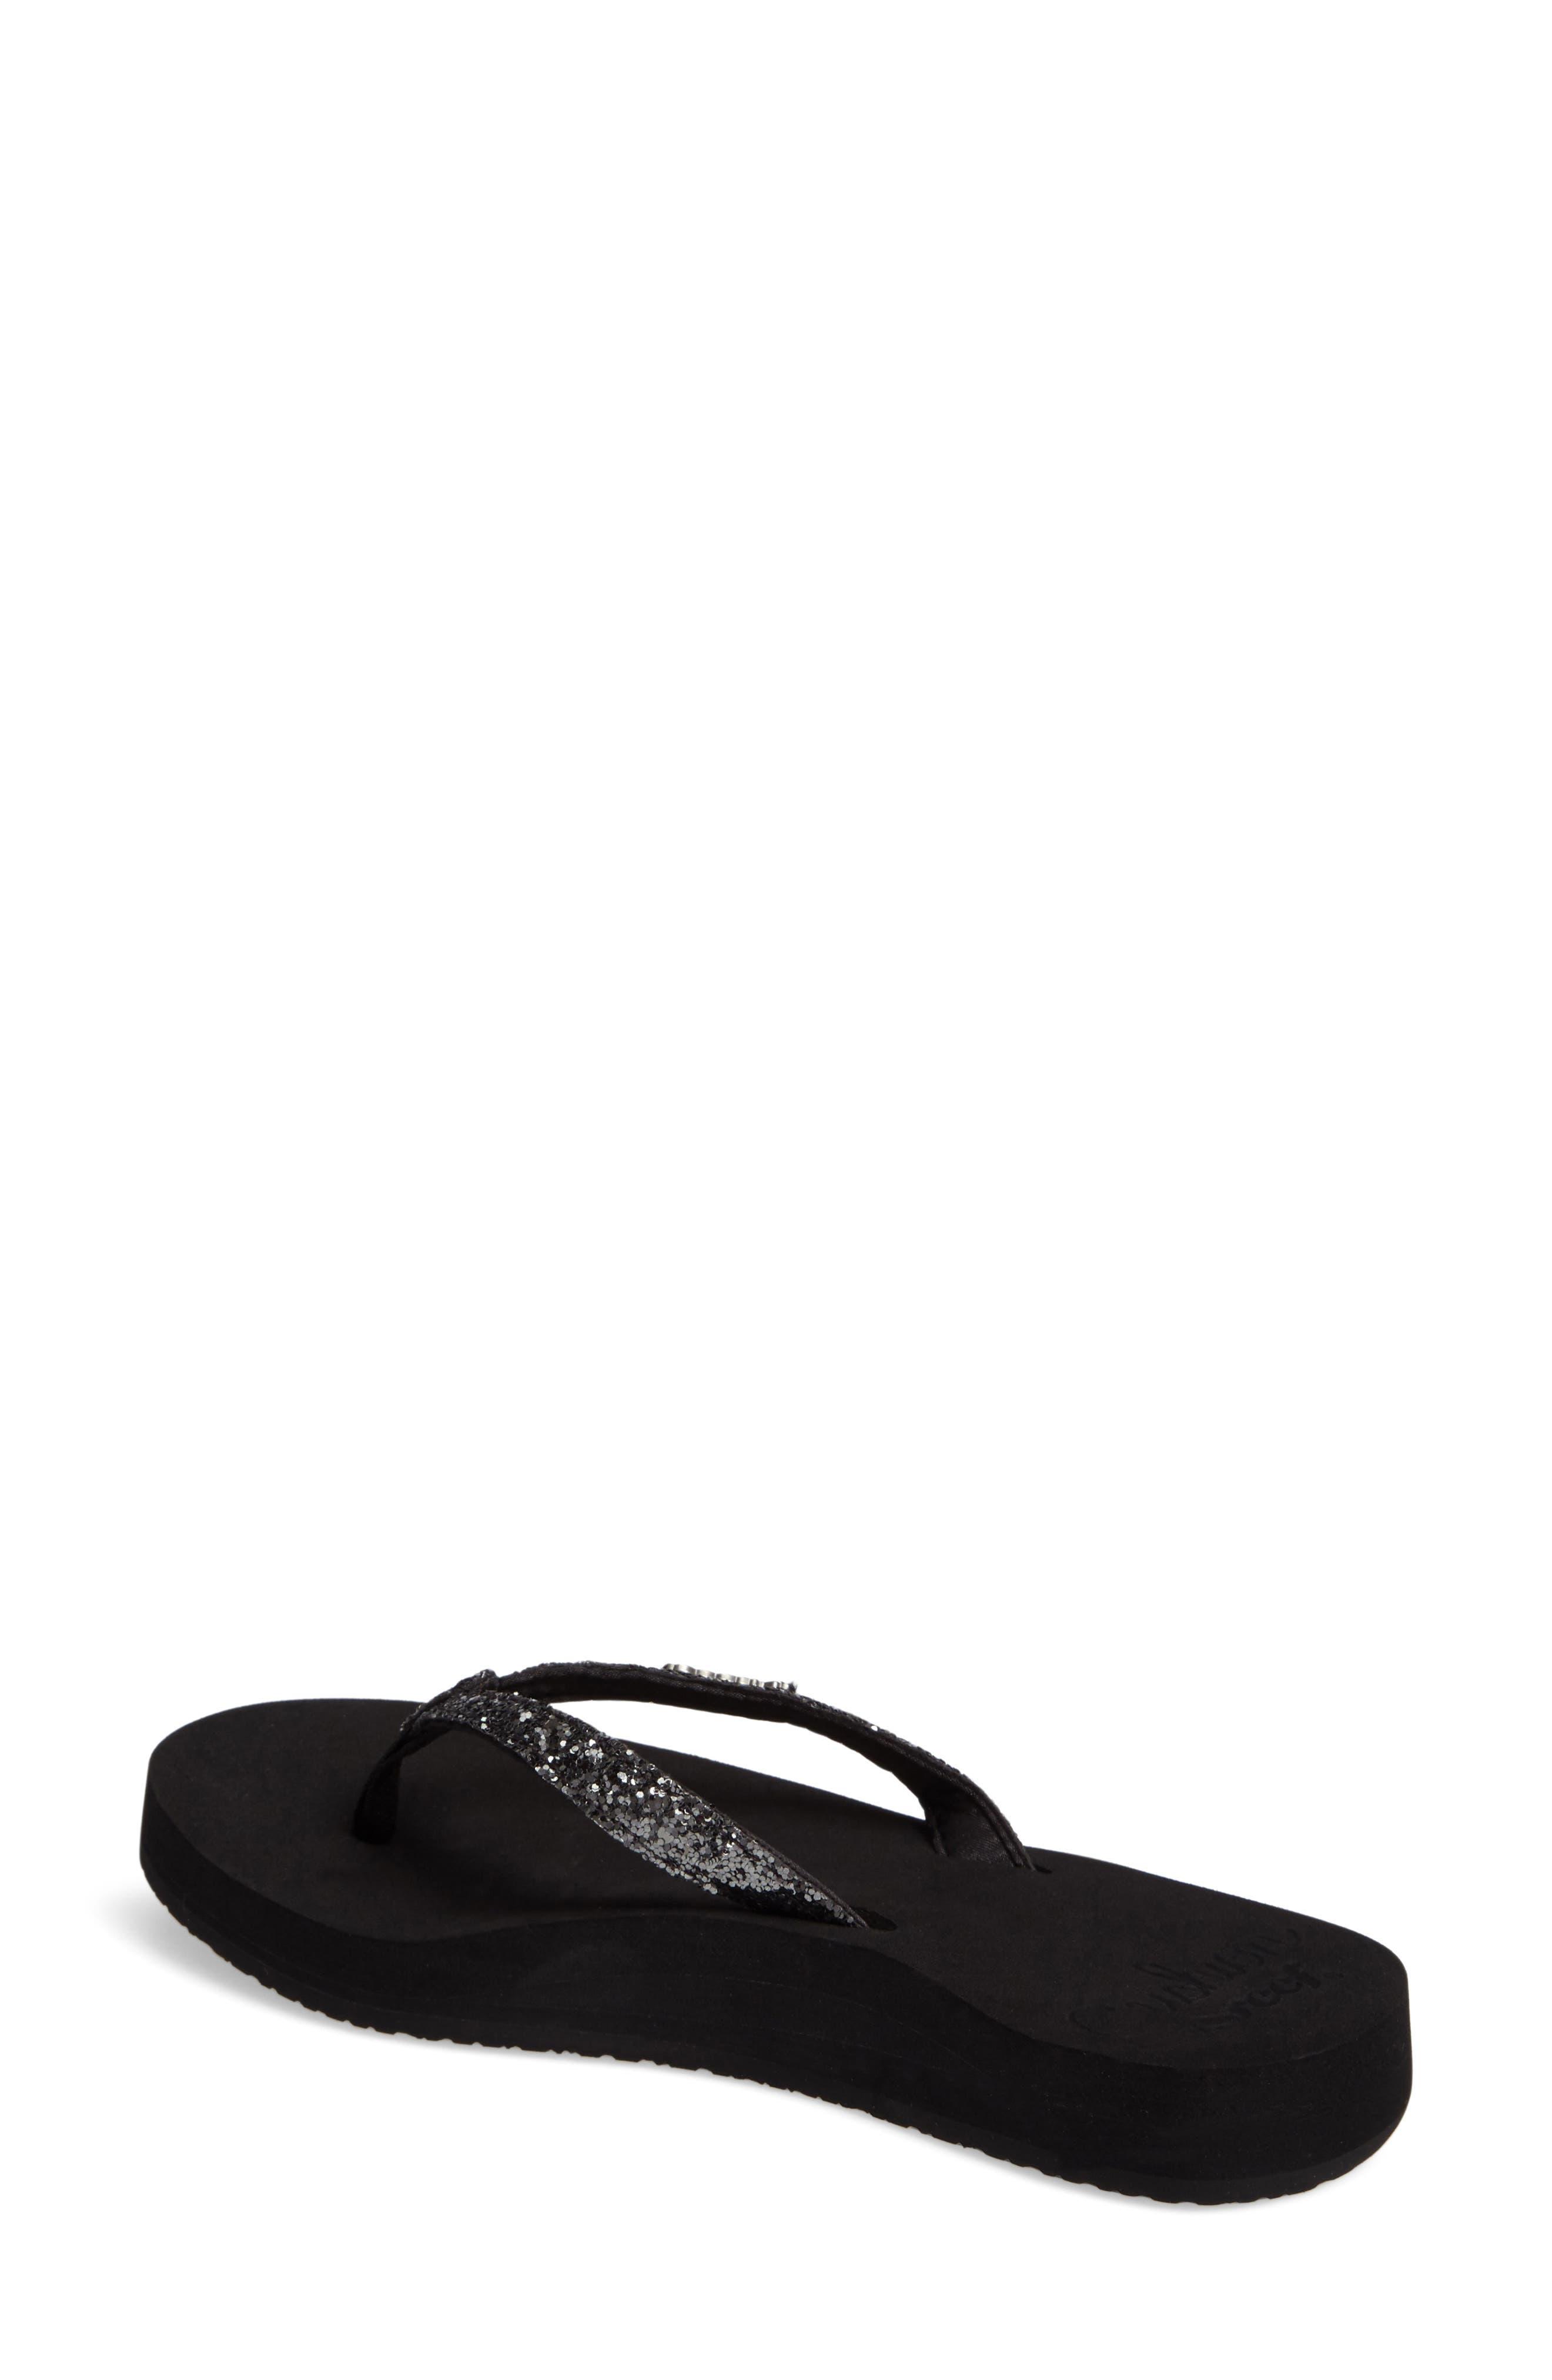 REEF, Star Cushion Flip Flop, Alternate thumbnail 2, color, BLACK/ GUNMETAL